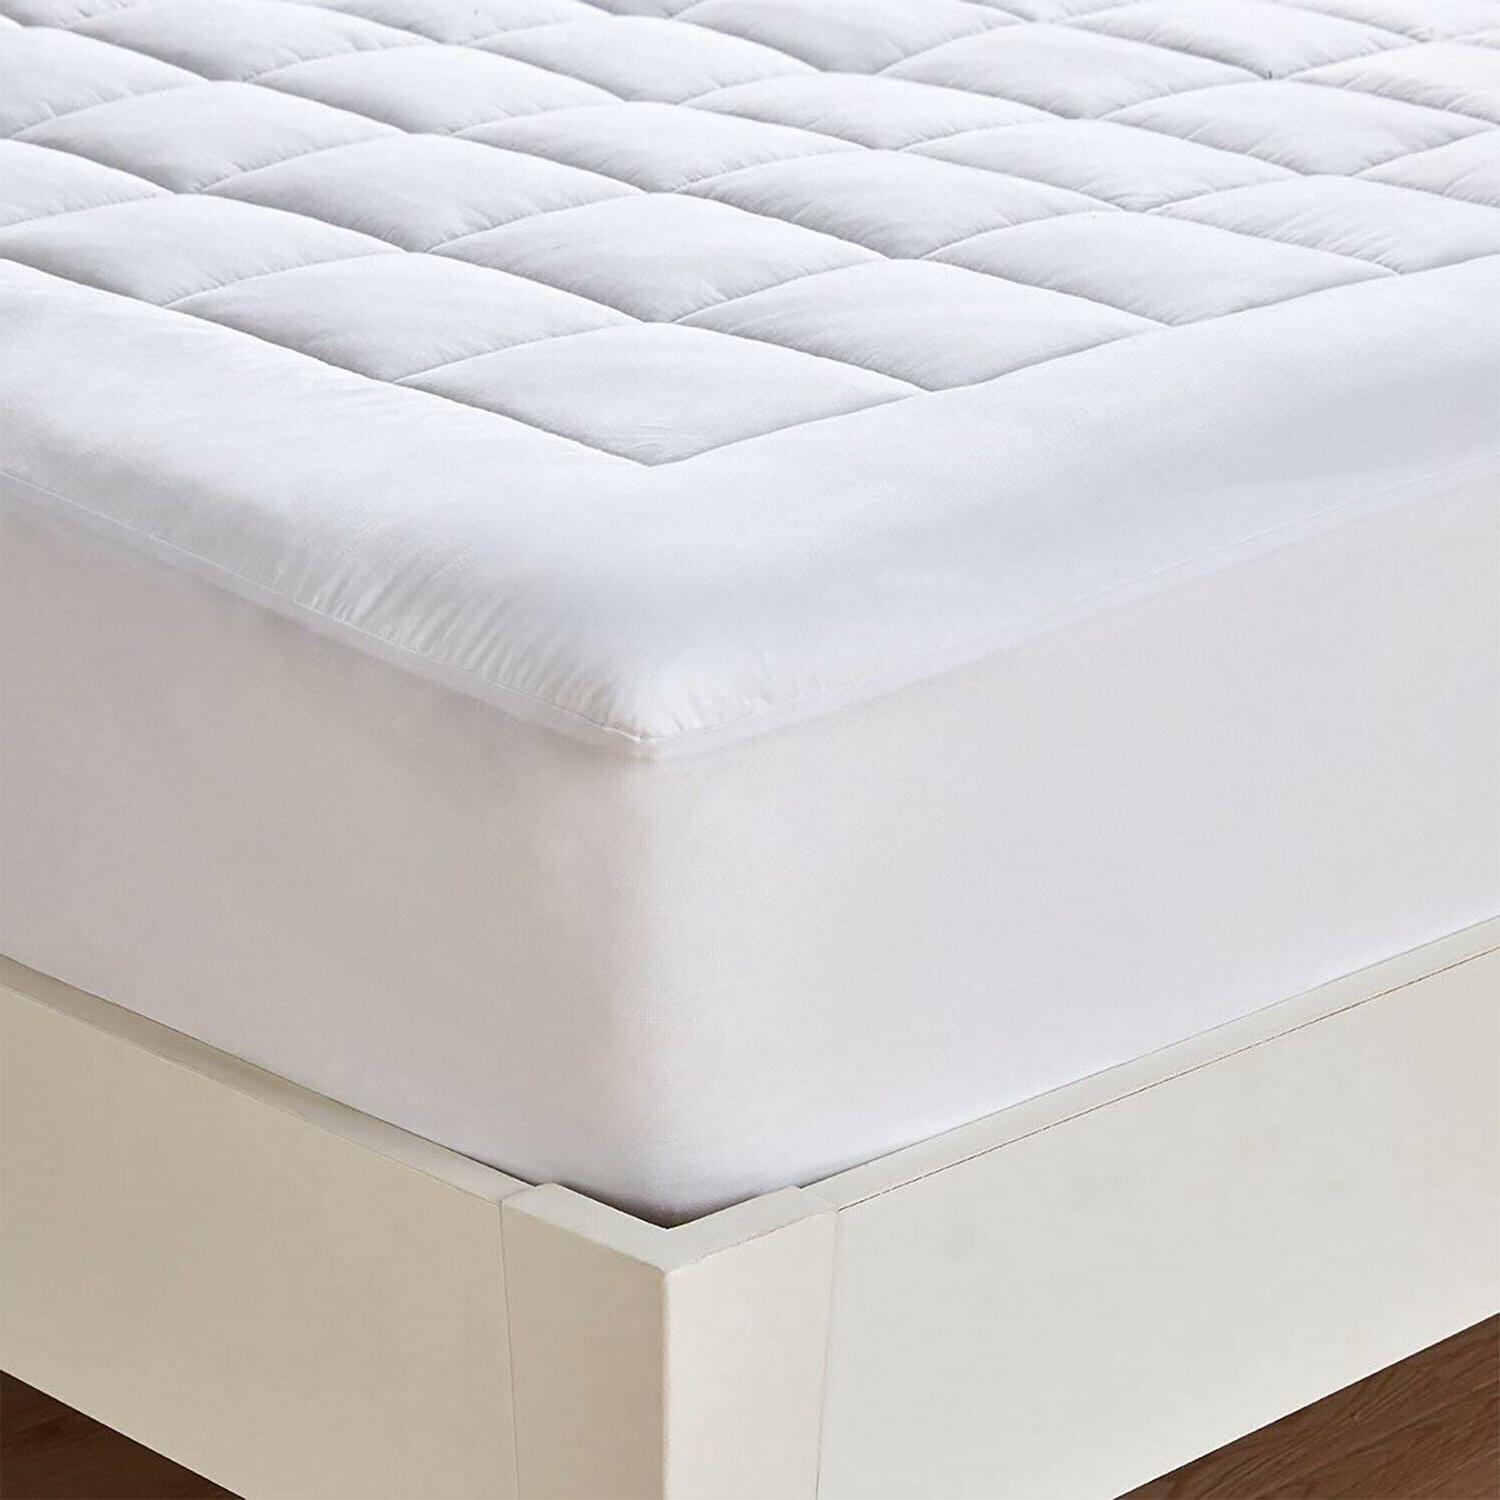 Cooling Cotton Mattress Down Alternative Topper Breathable Bed